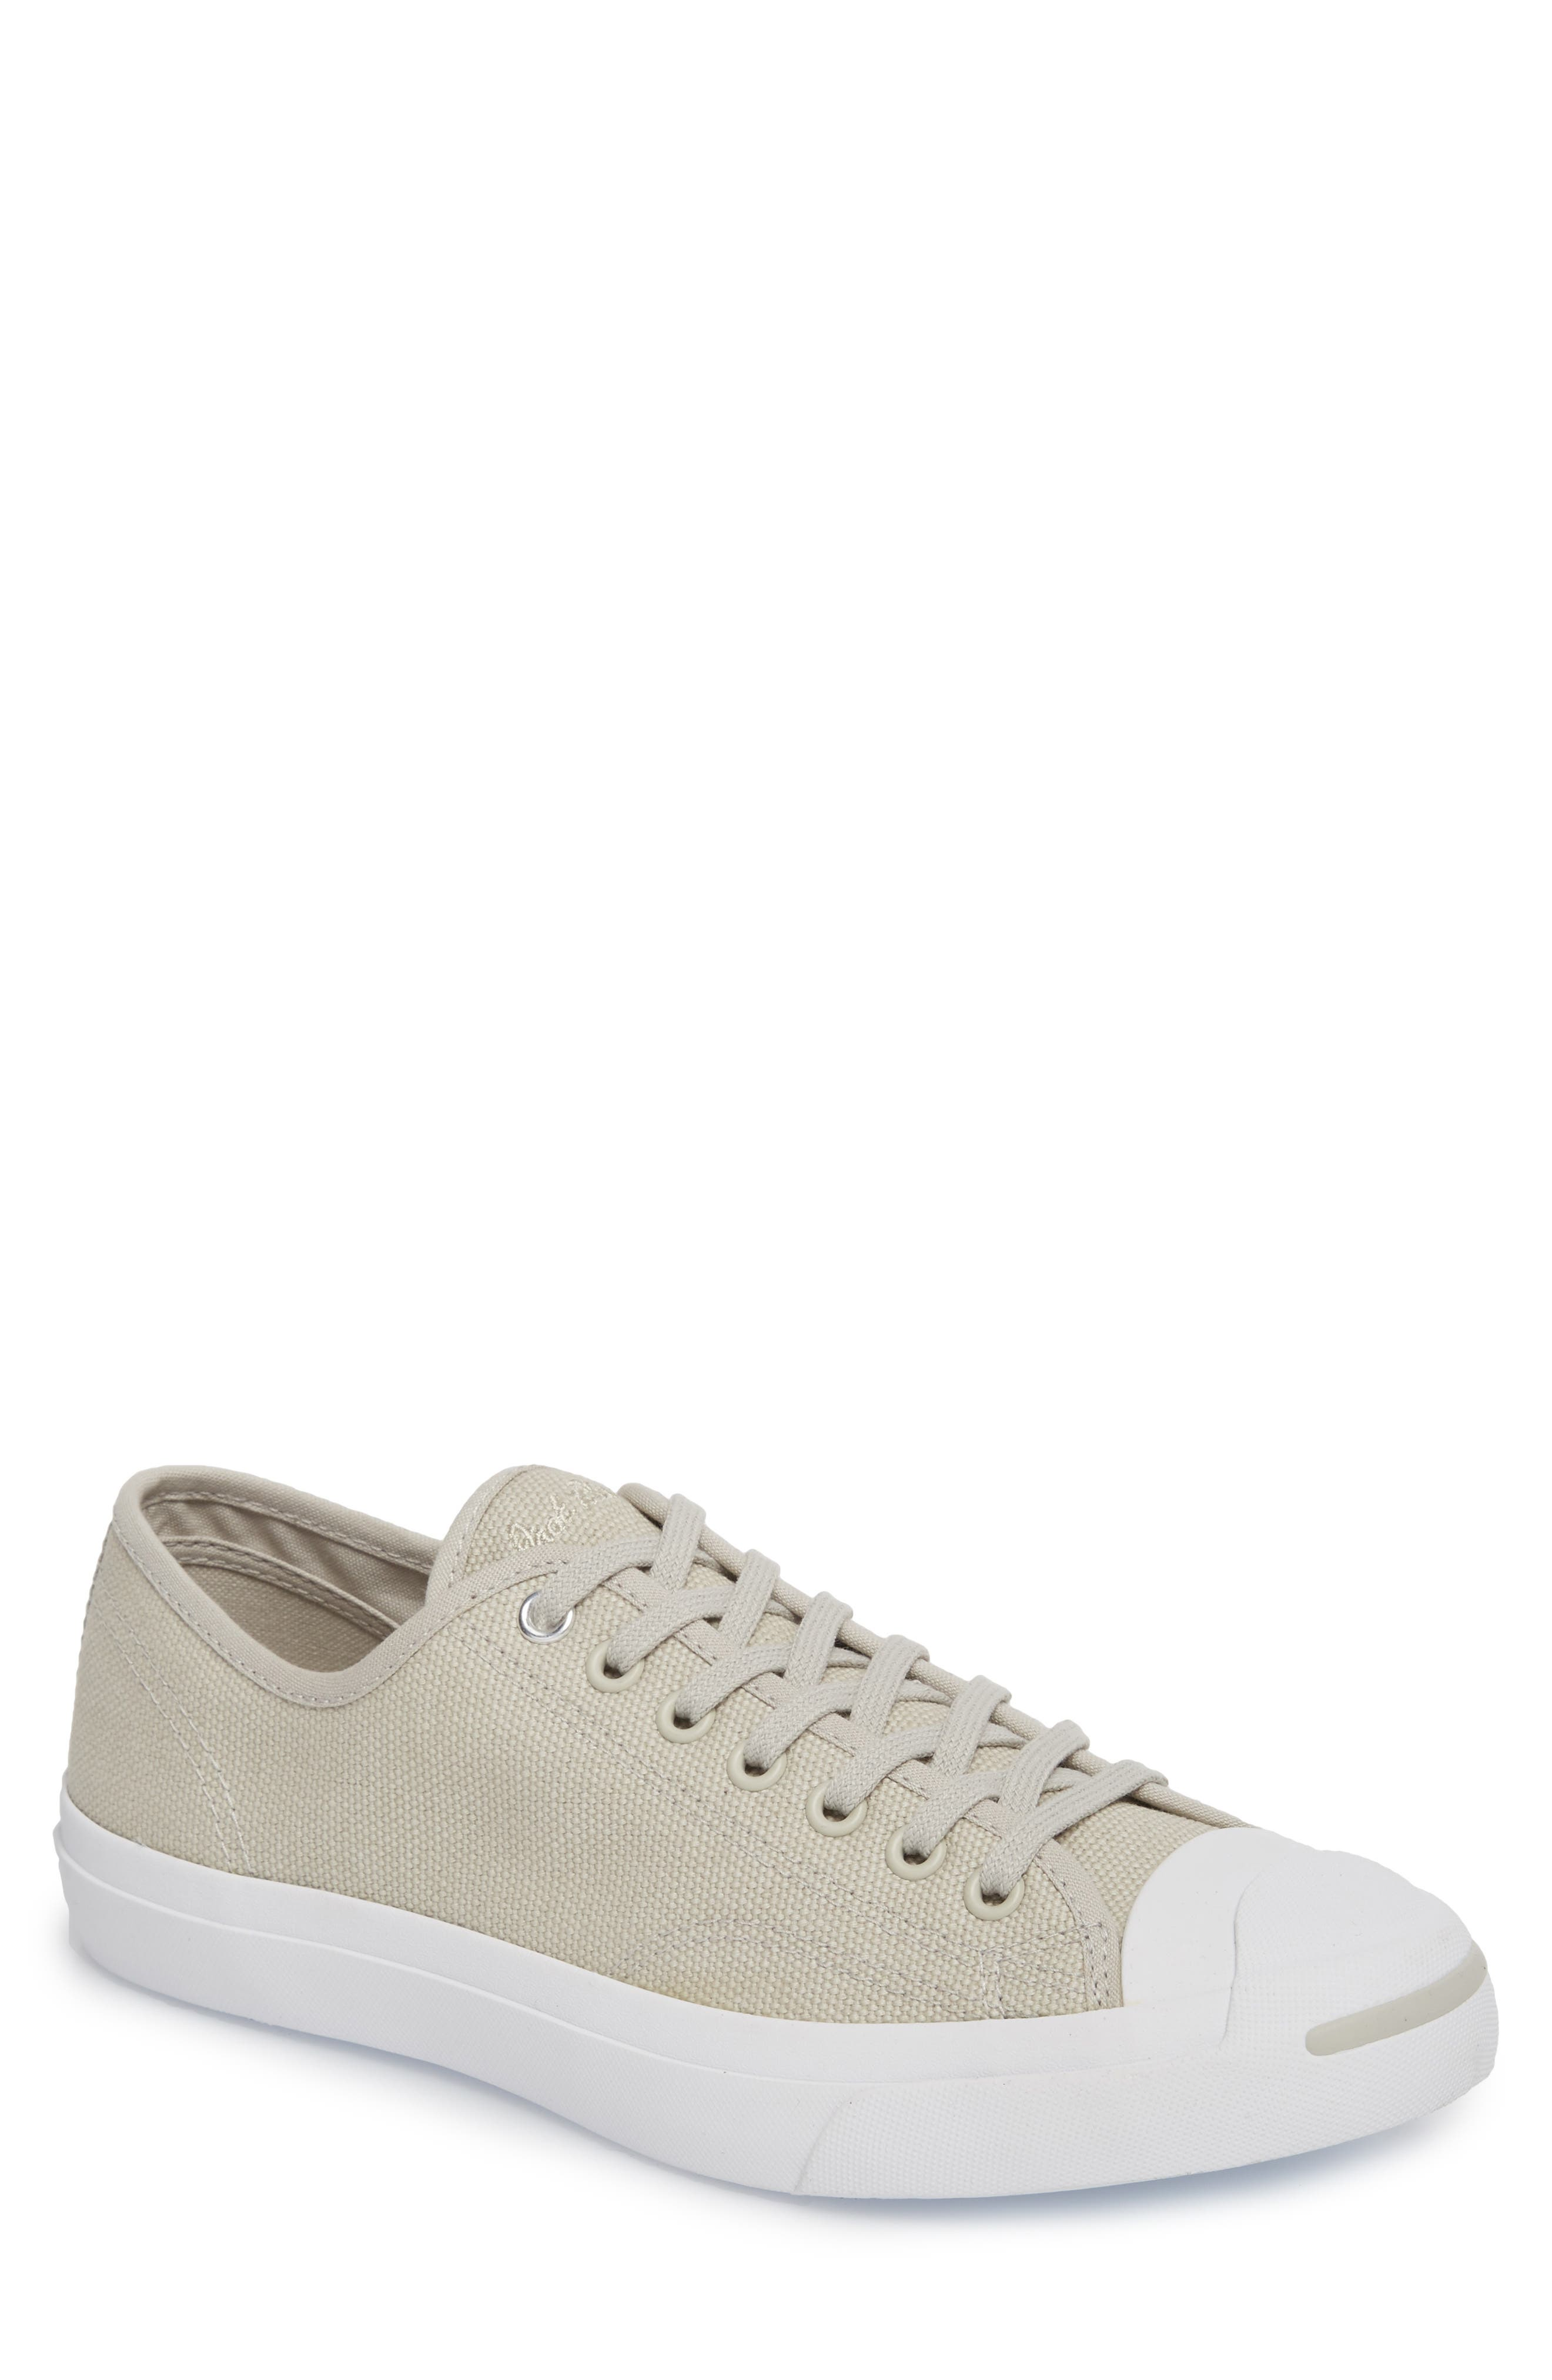 Jack Purcell Sneaker,                             Main thumbnail 1, color,                             026